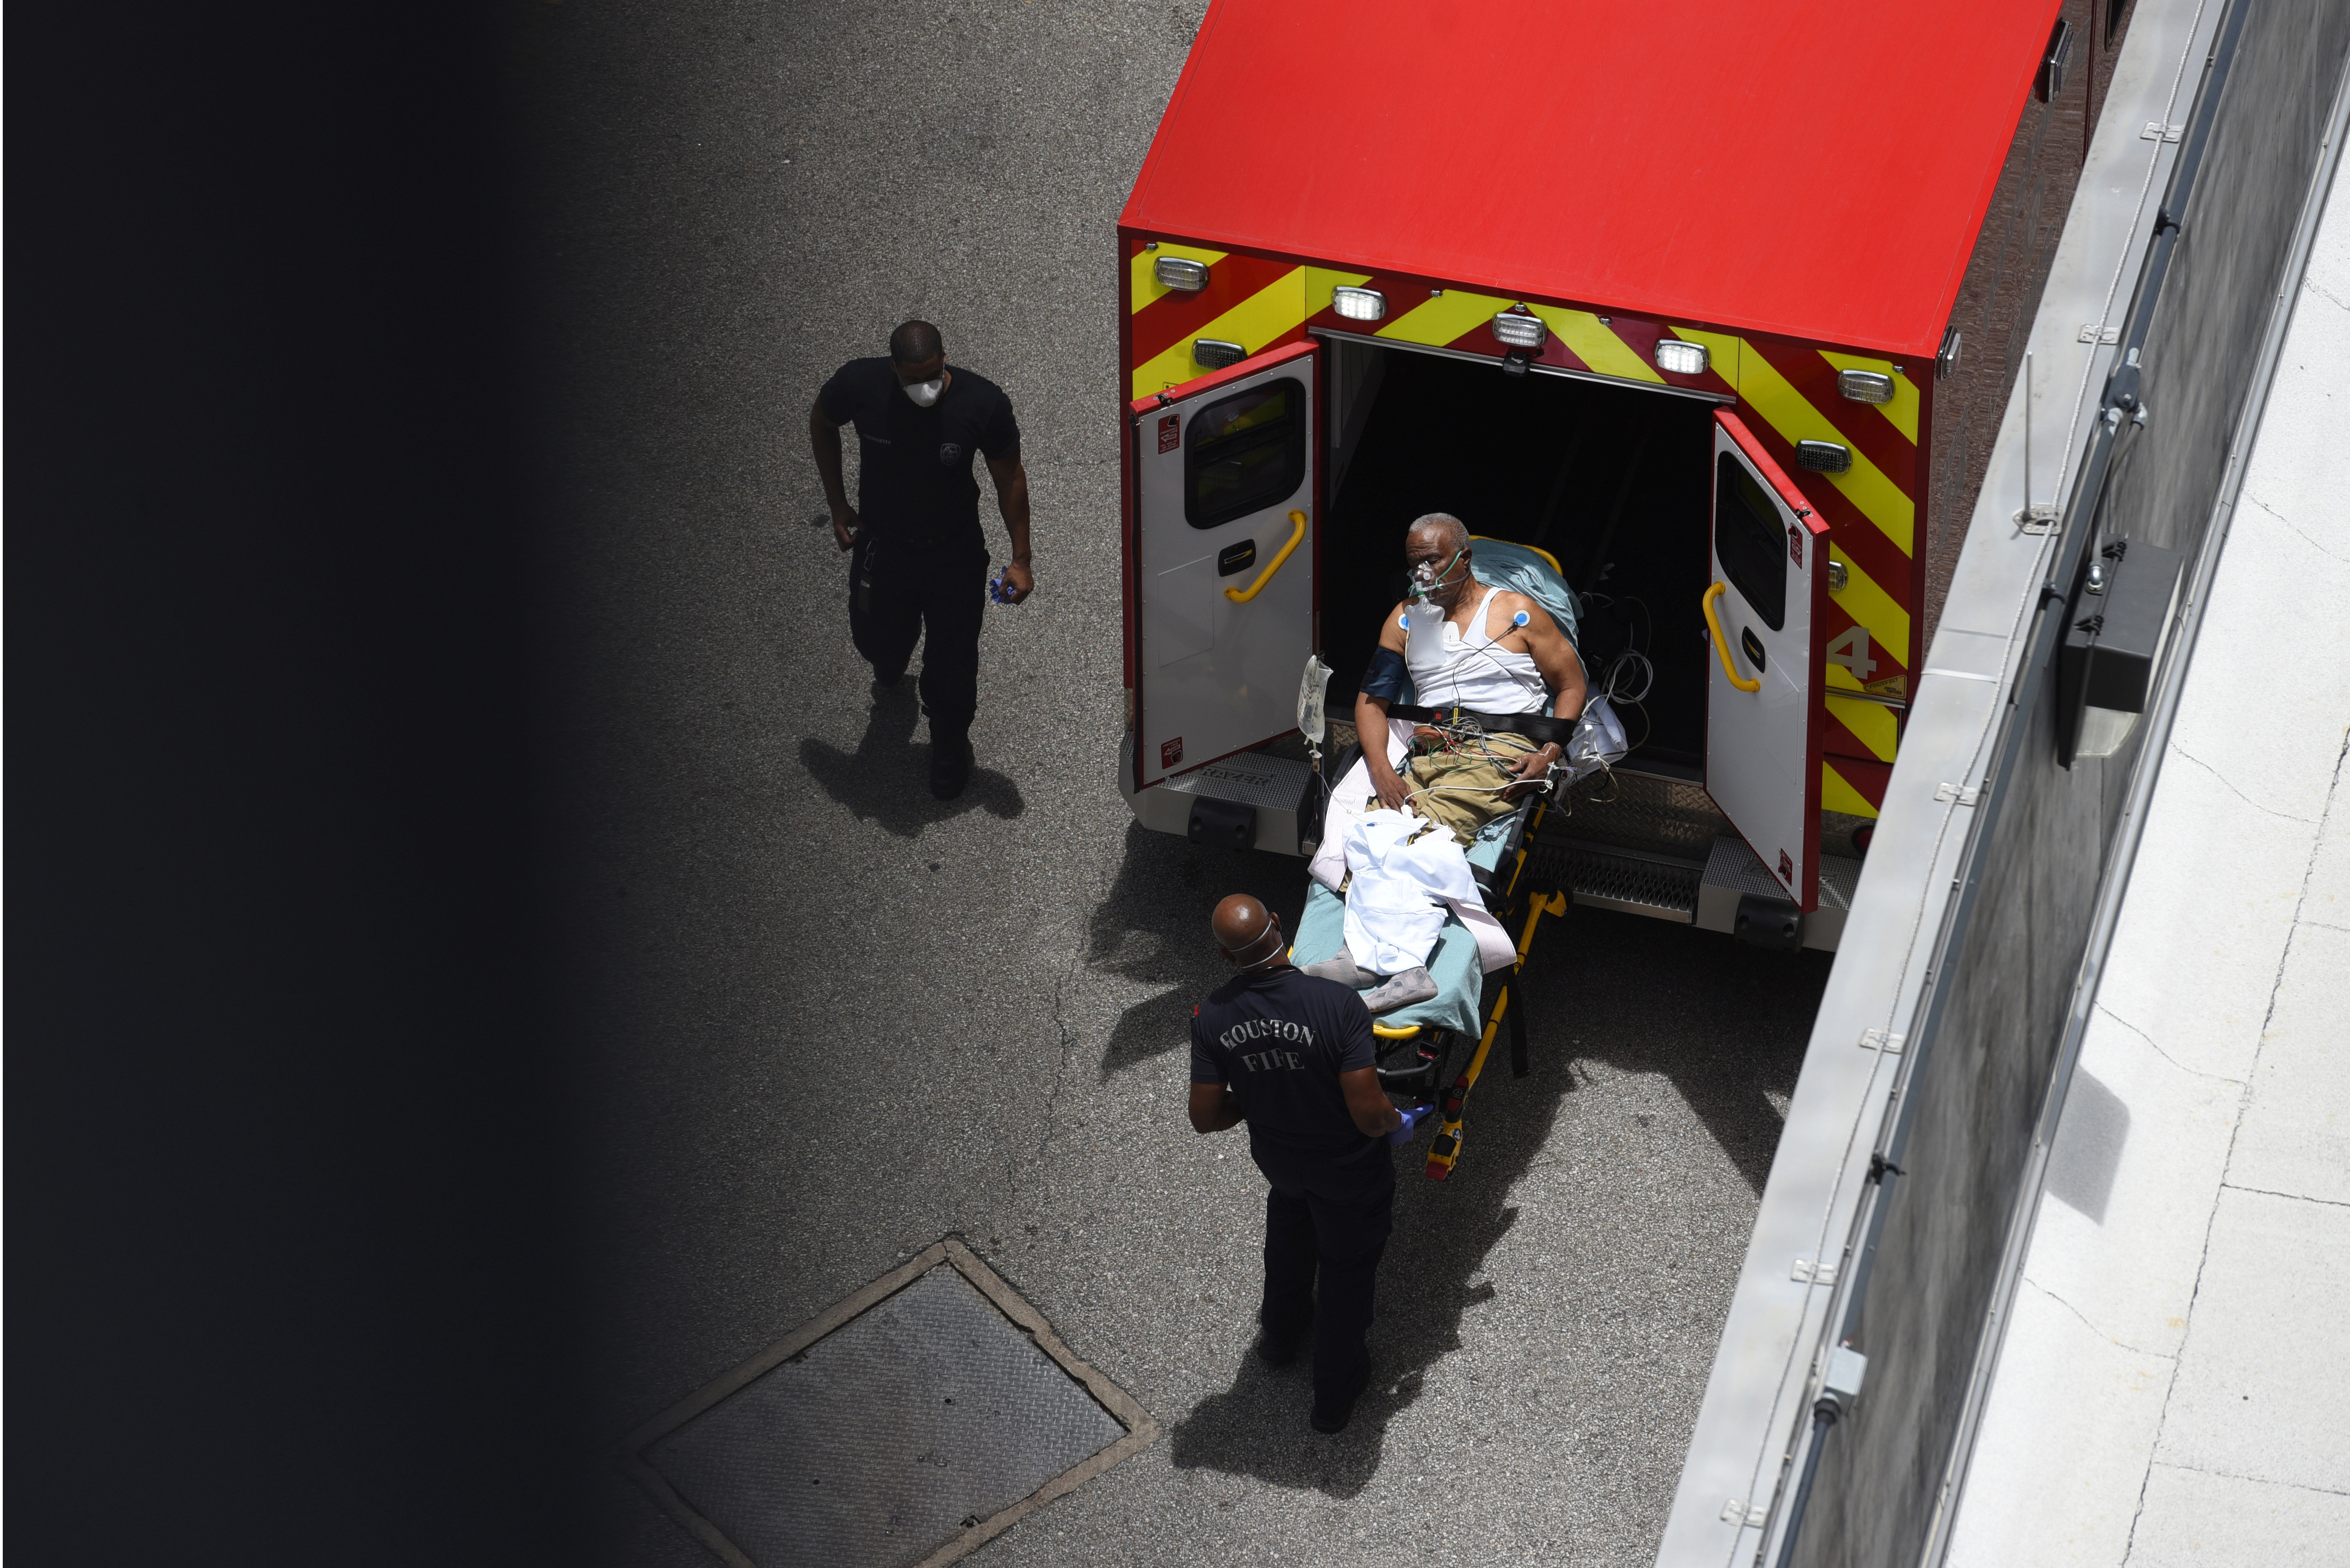 A man arrives at Houston Methodist Hospital emergency room on a stretcher amid a coronavirus disease (COVID-19) outbreak in Houston, Texas, U.S., June 28, 2020.  REUTERS/Callaghan O'Hare     TPX IMAGES OF THE DAY - RC2JIH9AHULU